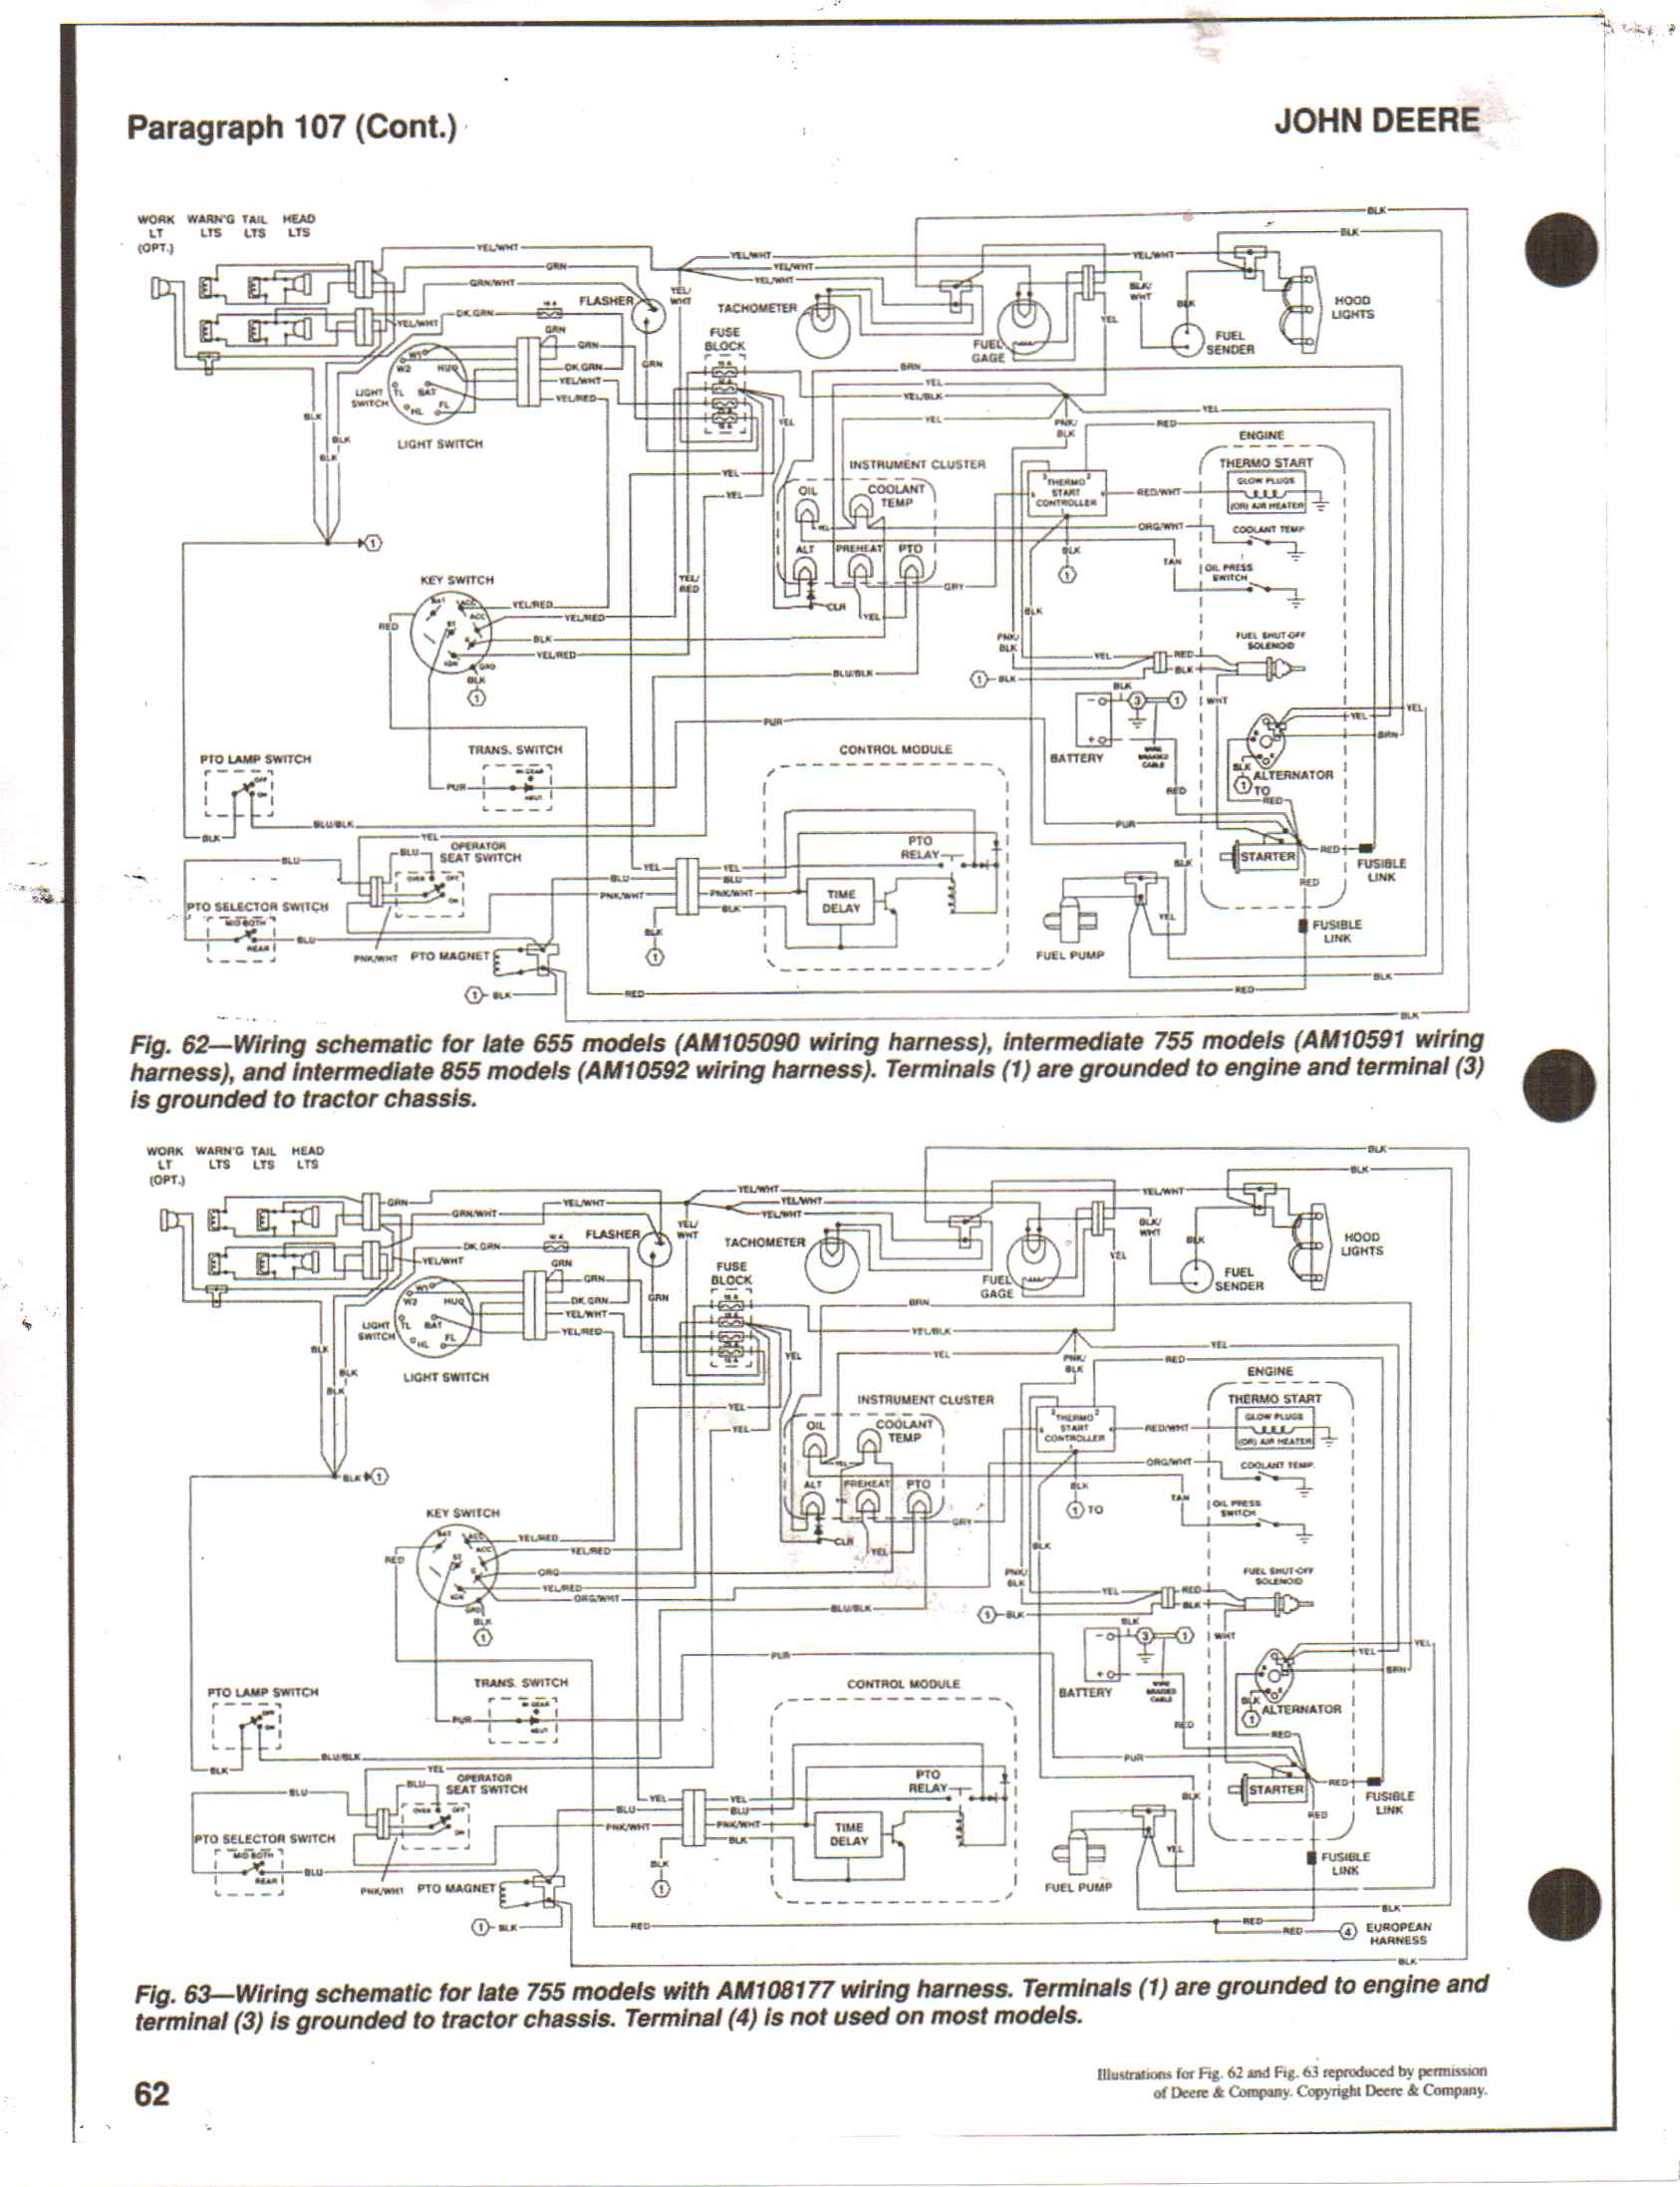 John Deere 755 Wiring Diagram Improve X320 Awesome Fine L100